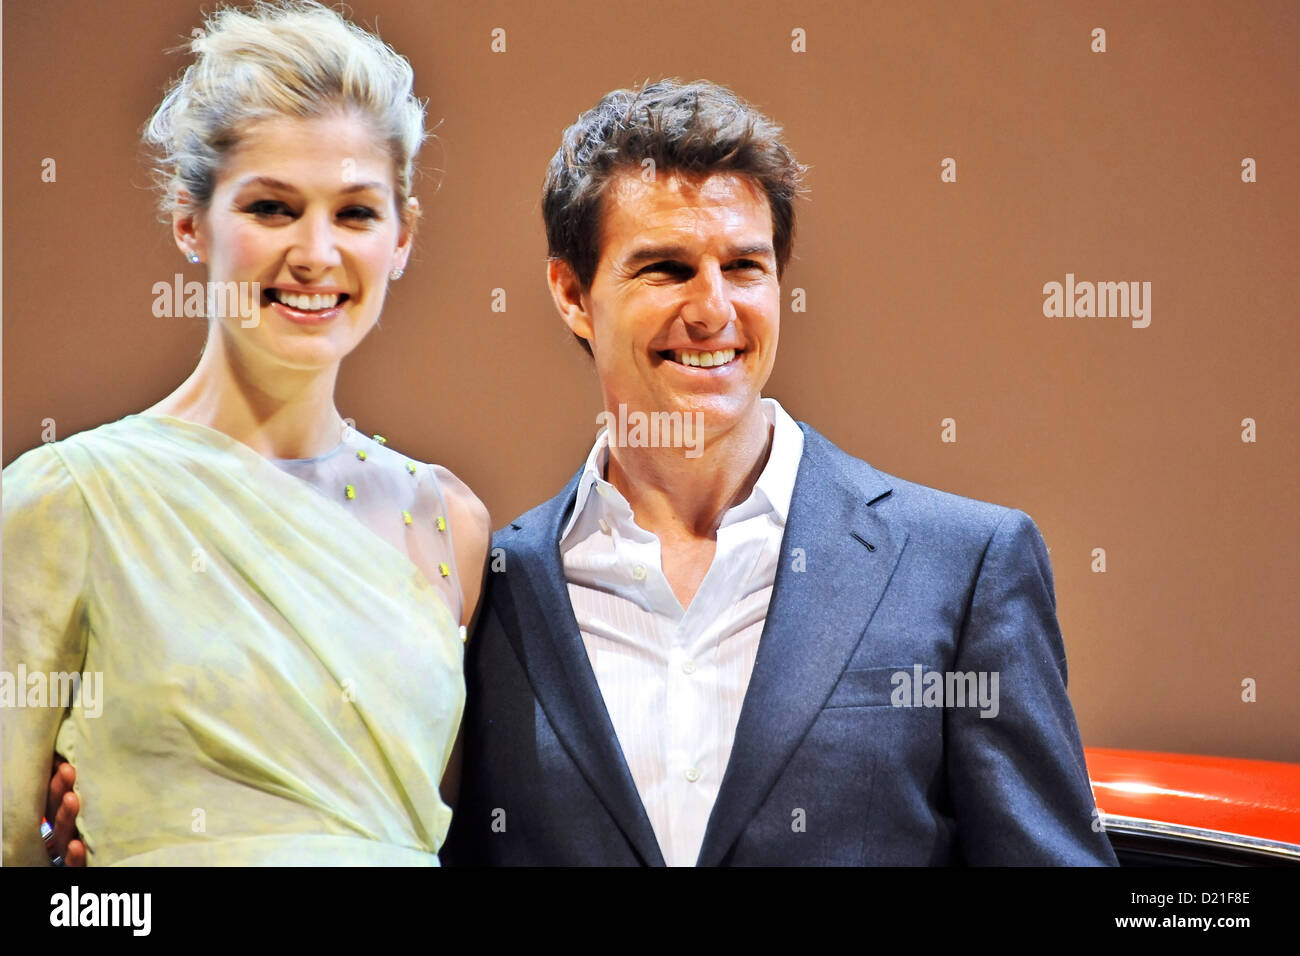 Actress Rosamund Pike and actor Tom Cruise attend the 'Jack Reacher' Japan Premiere at Tokyo International - Stock Image